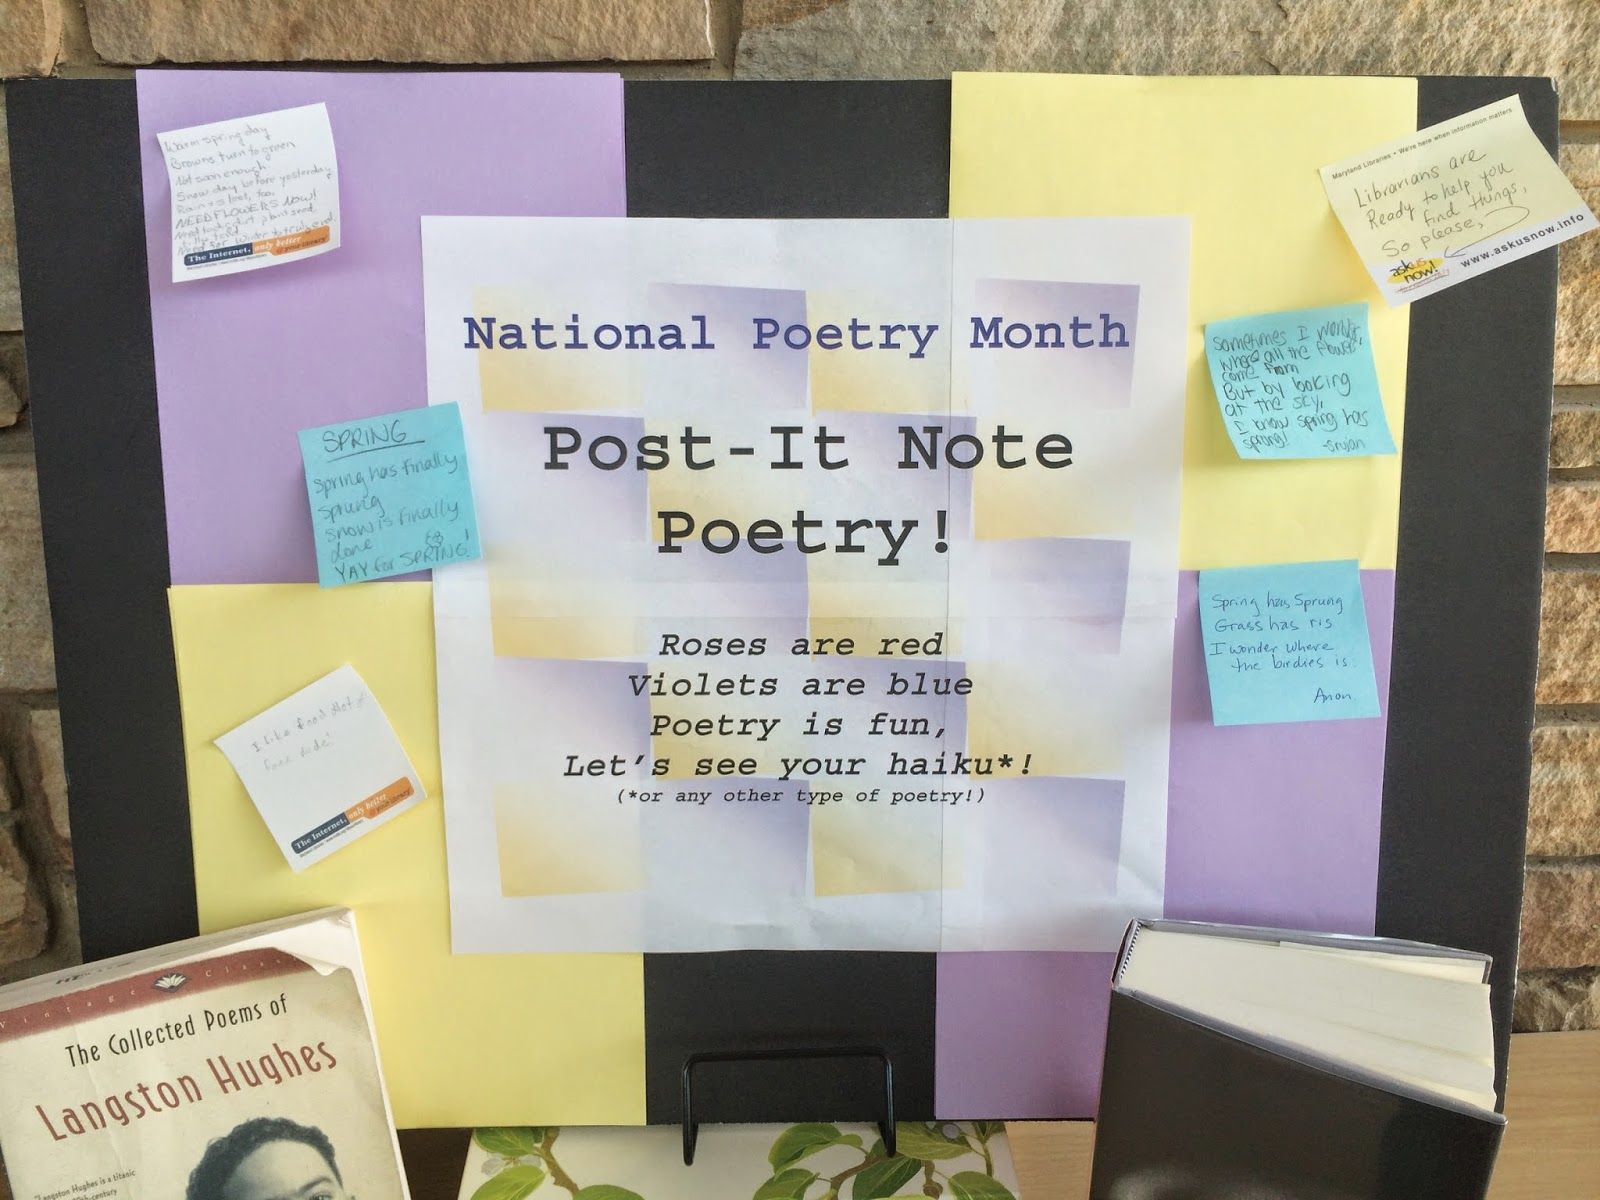 gaithersburg library, national poetry month